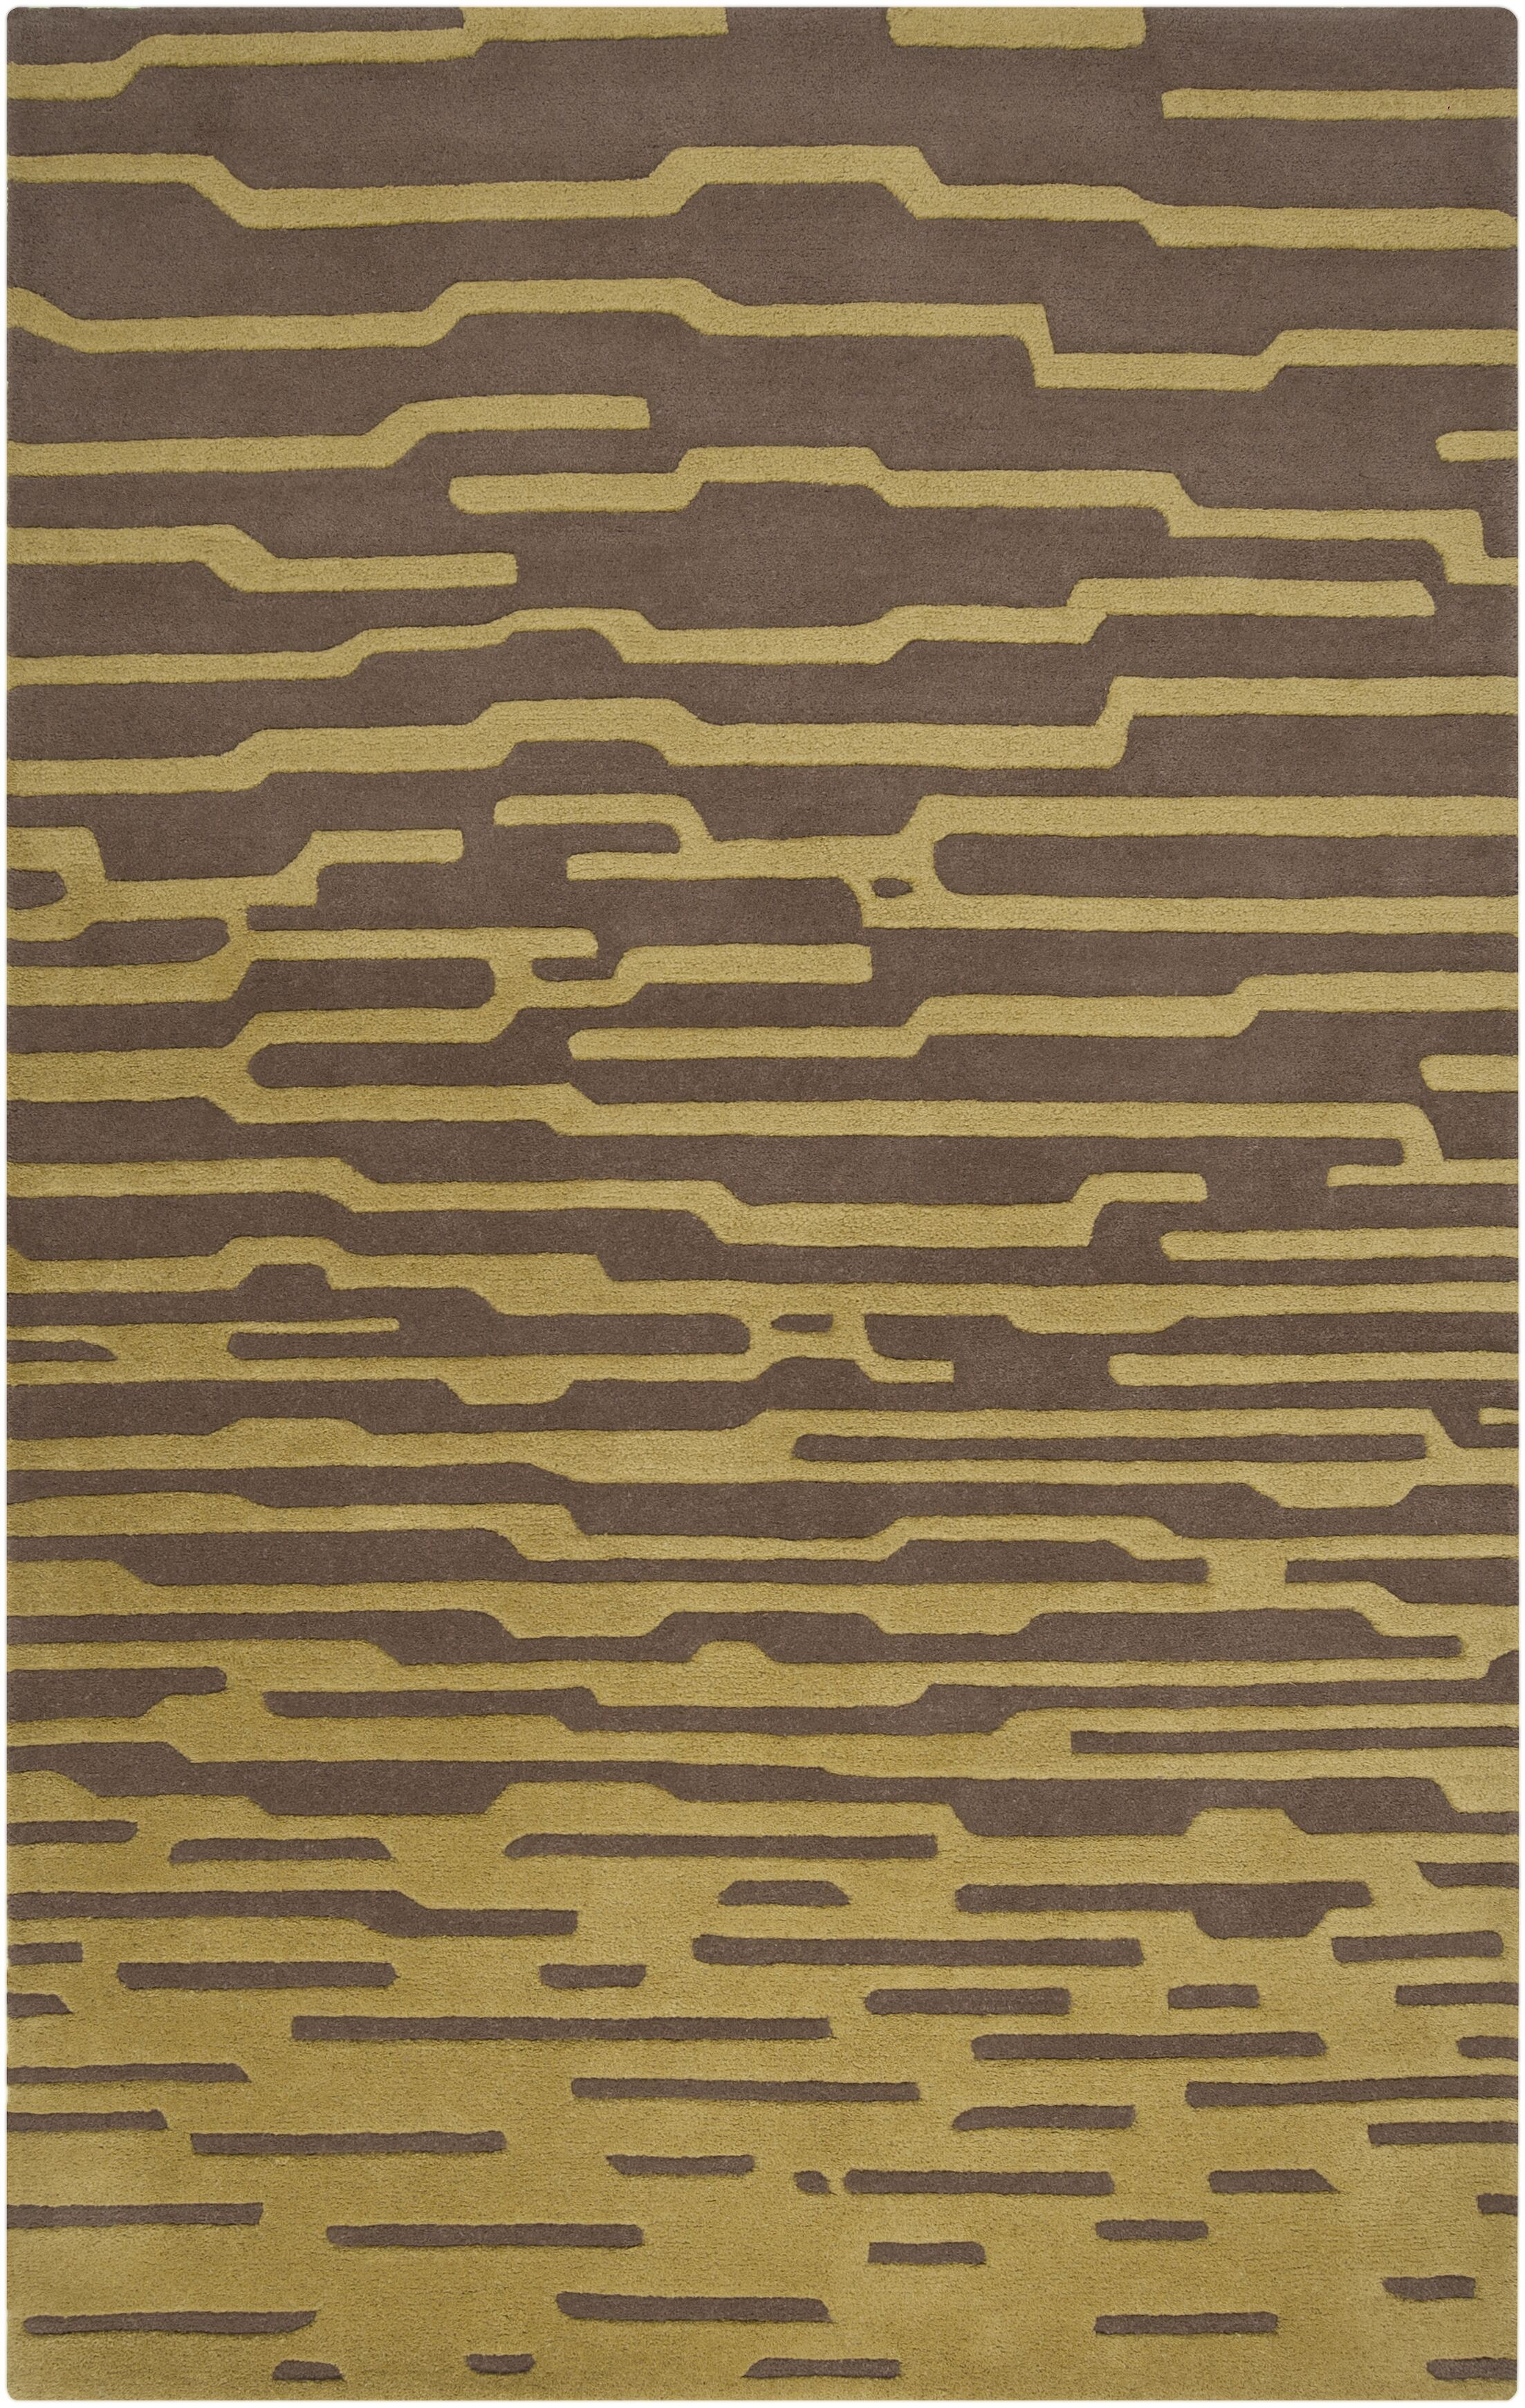 Harlequin Olive/Dark Taupe Geometric Area Rug Rug Size: Rectangle 9' x 12'